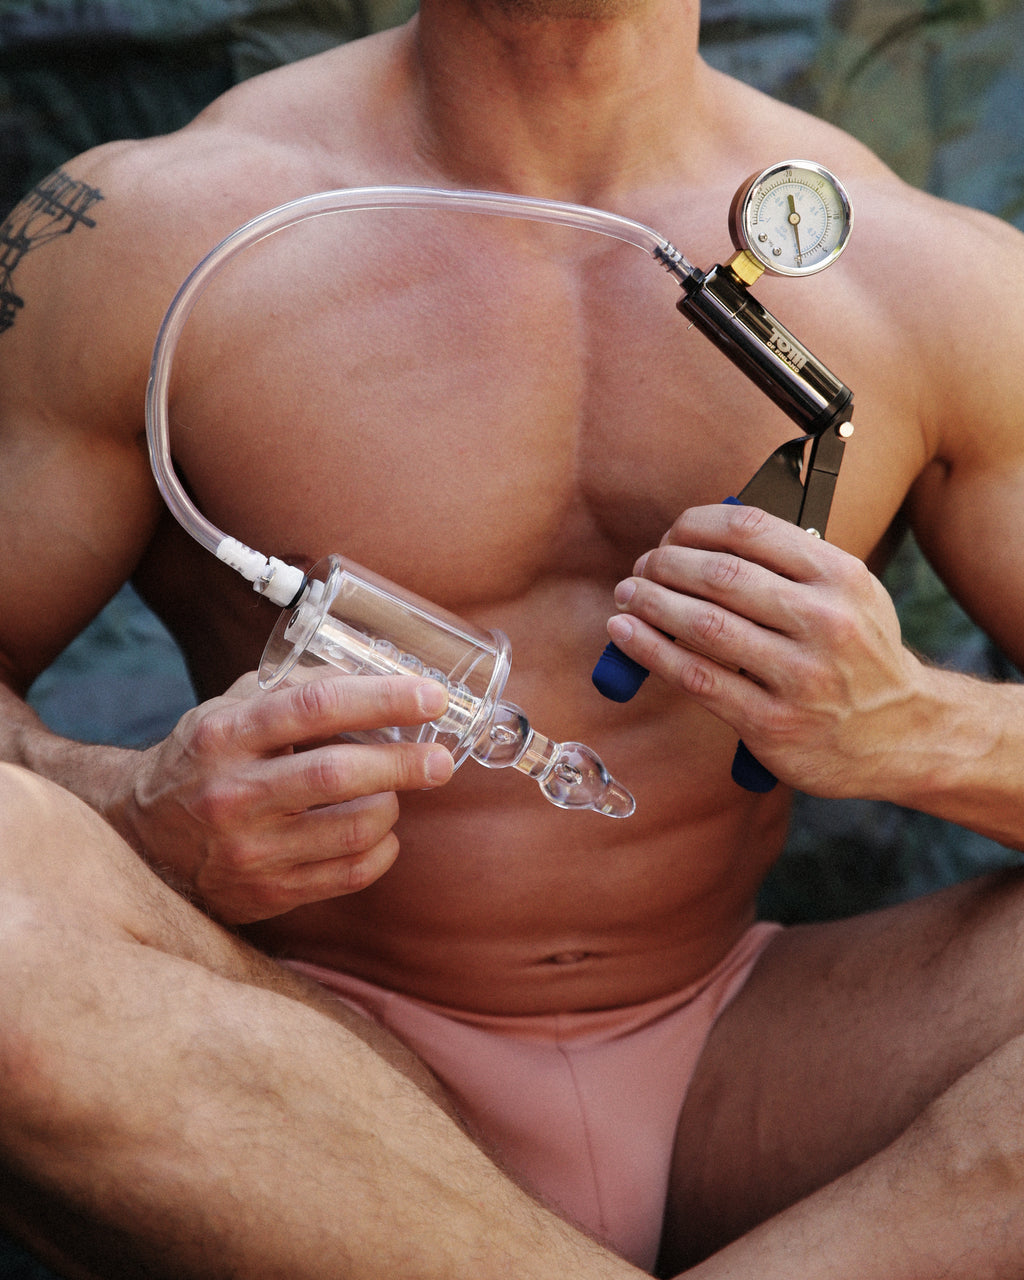 Anal Pump Pics tom of finland tom of finland anal rosebud vacuum with beaded rod